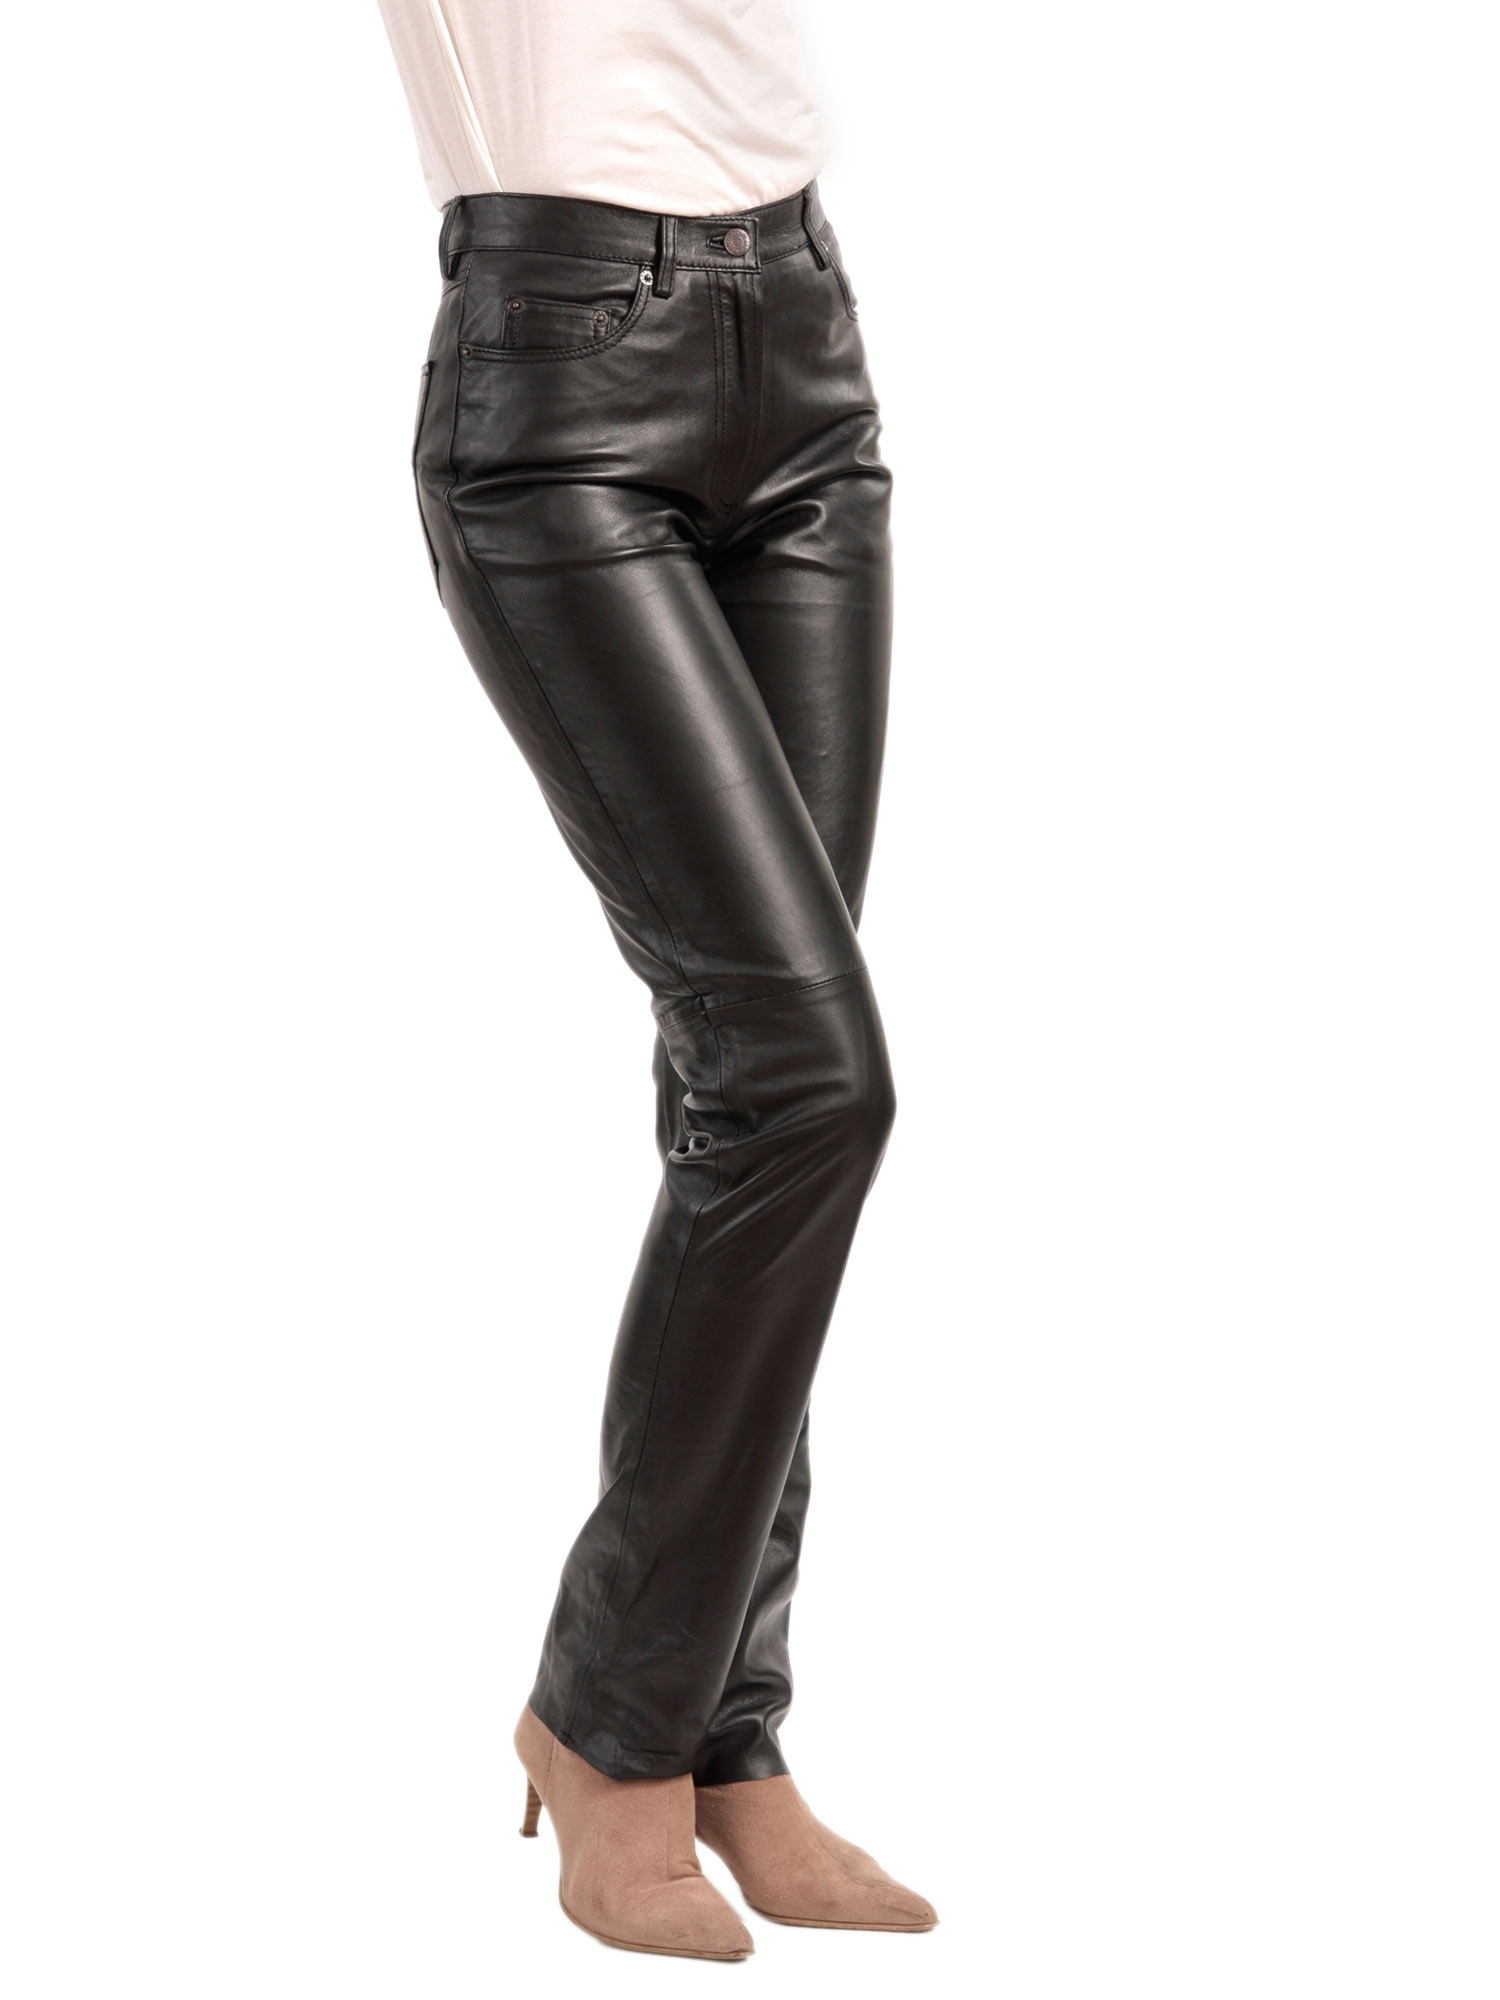 Model How To Wear Perfect Style Leather Pants For Women This Season